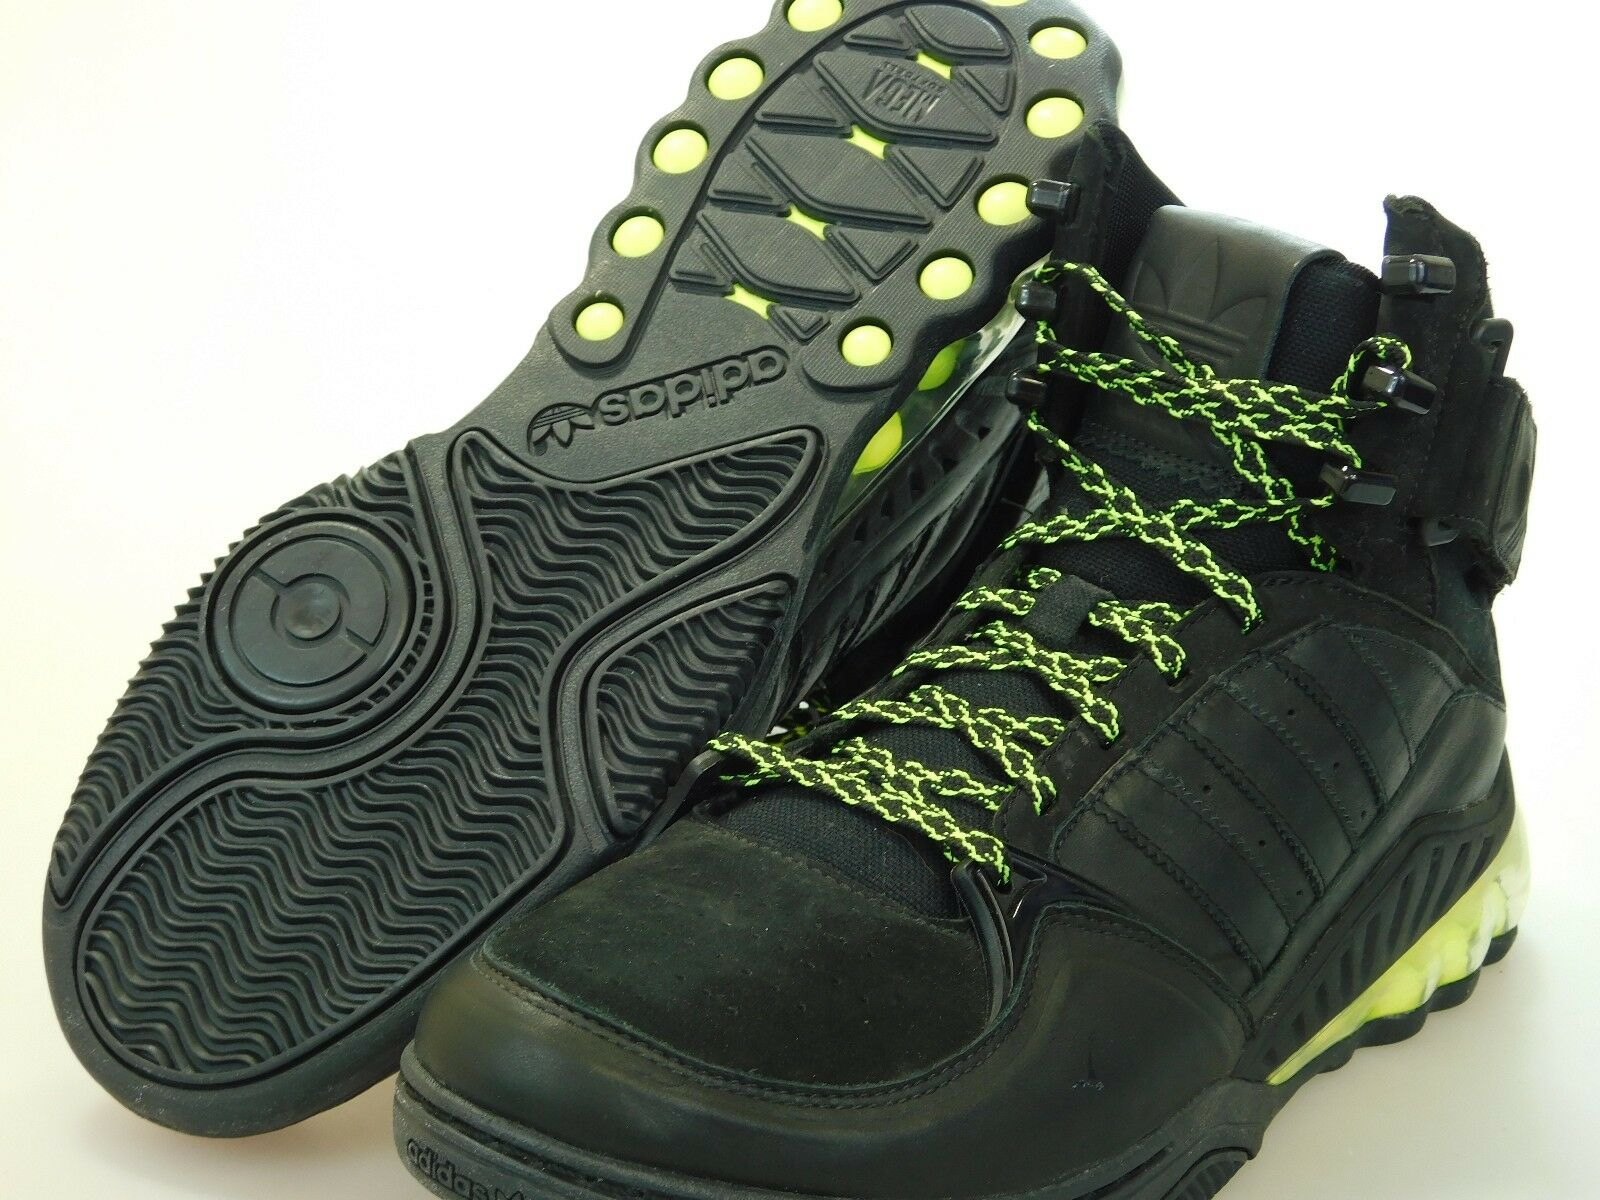 NEW Mens Adidas MEGA SOFTCELL BHM Shoes G41838 SIZE 7.5 best-selling model of the brand